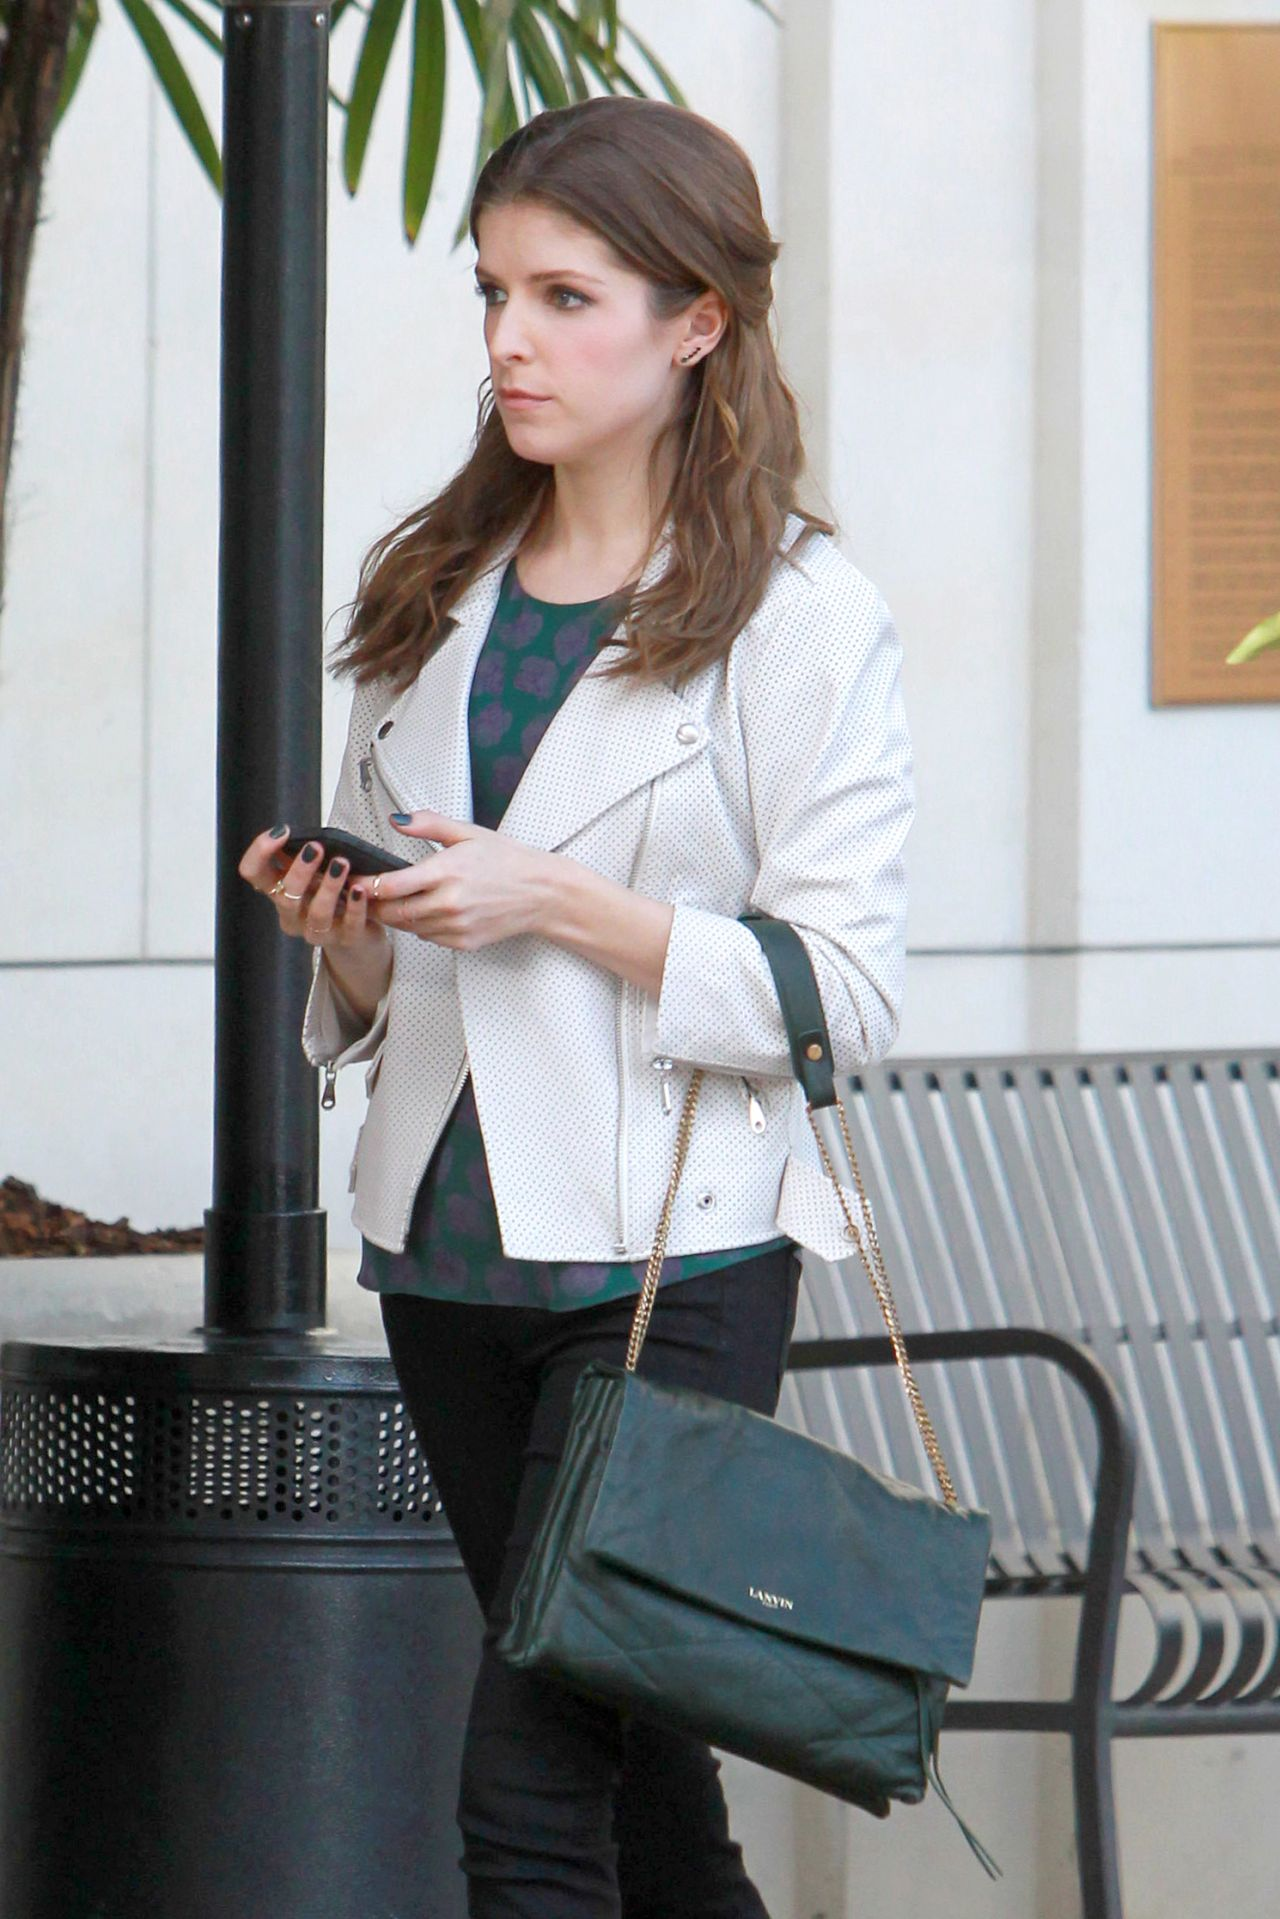 Anna Kendrick - 2015 Celebrity Photos - Fashion Going to the Grove in ... Anna Kendrick